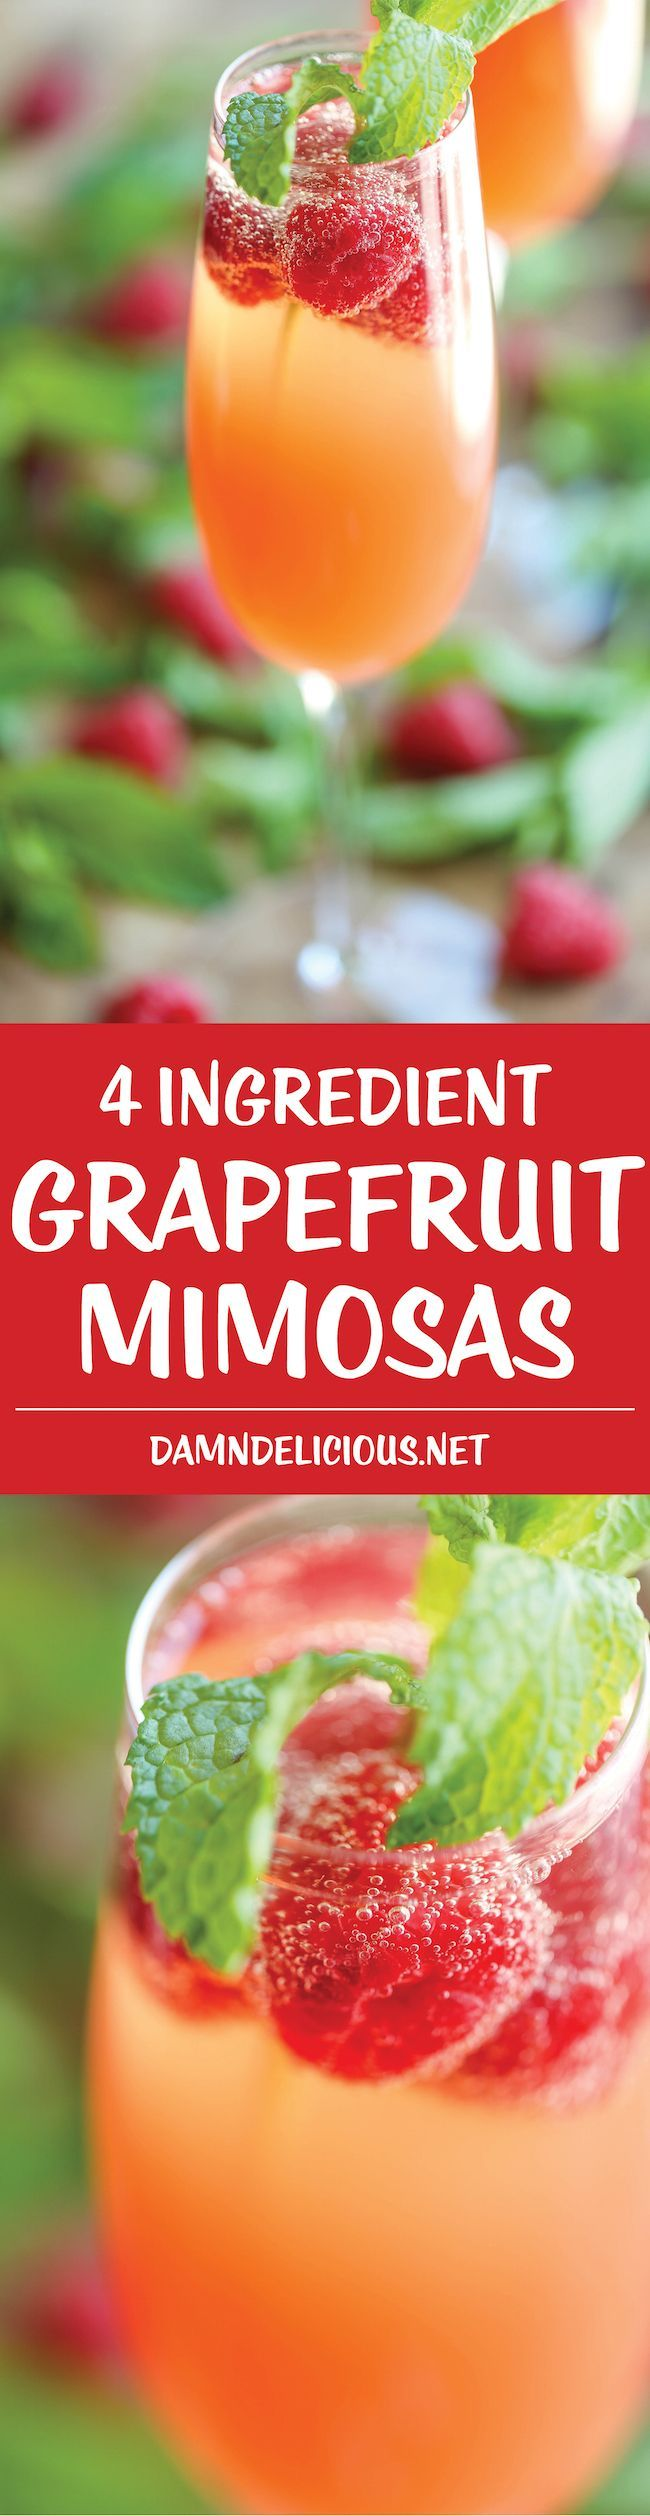 Grapefruit Mimosas - Easy peasy with just 4 ingredients (2 are actually optional garnishes!) and 5 min prep. Fun, fruity, and perfect for any occasion!